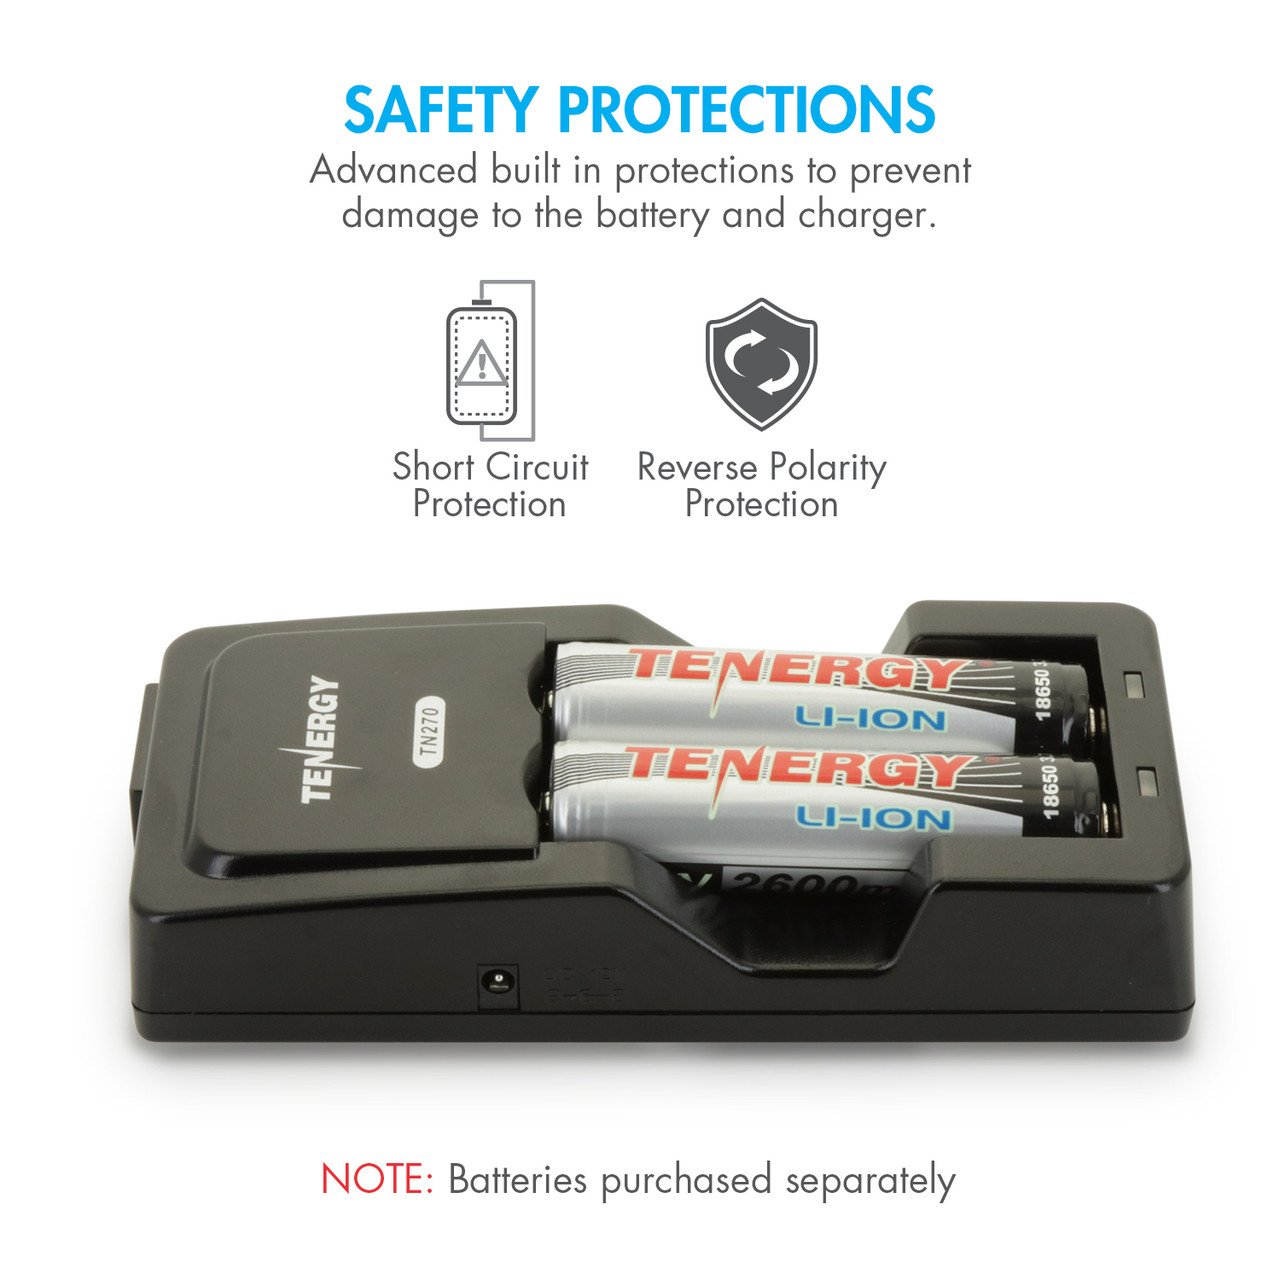 Tenergy TN270 Li-ion 18650/18500/14500 Fast Battery Charger